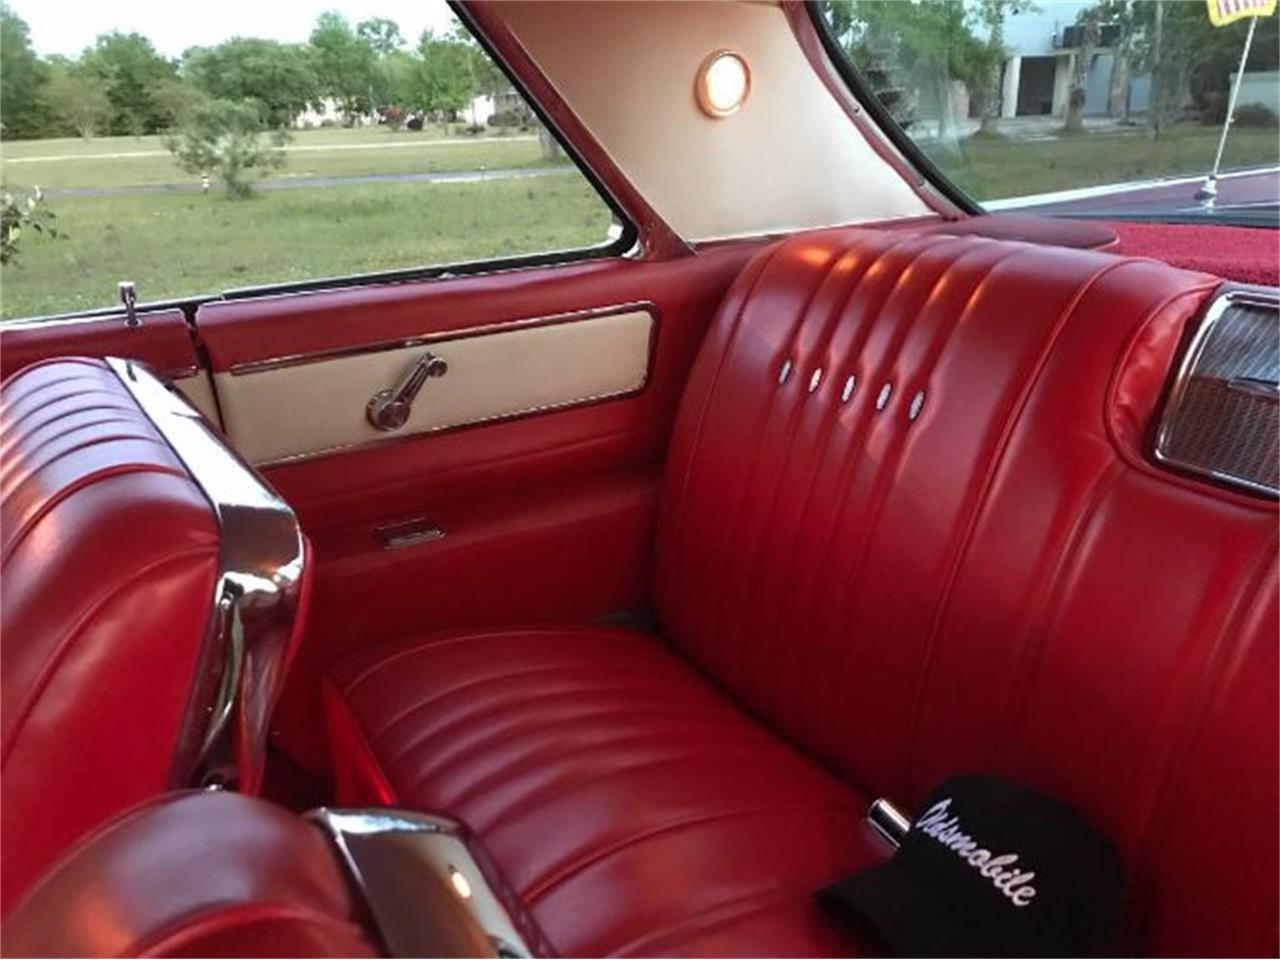 Large Picture of Classic 1964 Jetstar I located in Michigan - $25,995.00 Offered by Classic Car Deals - QFJE